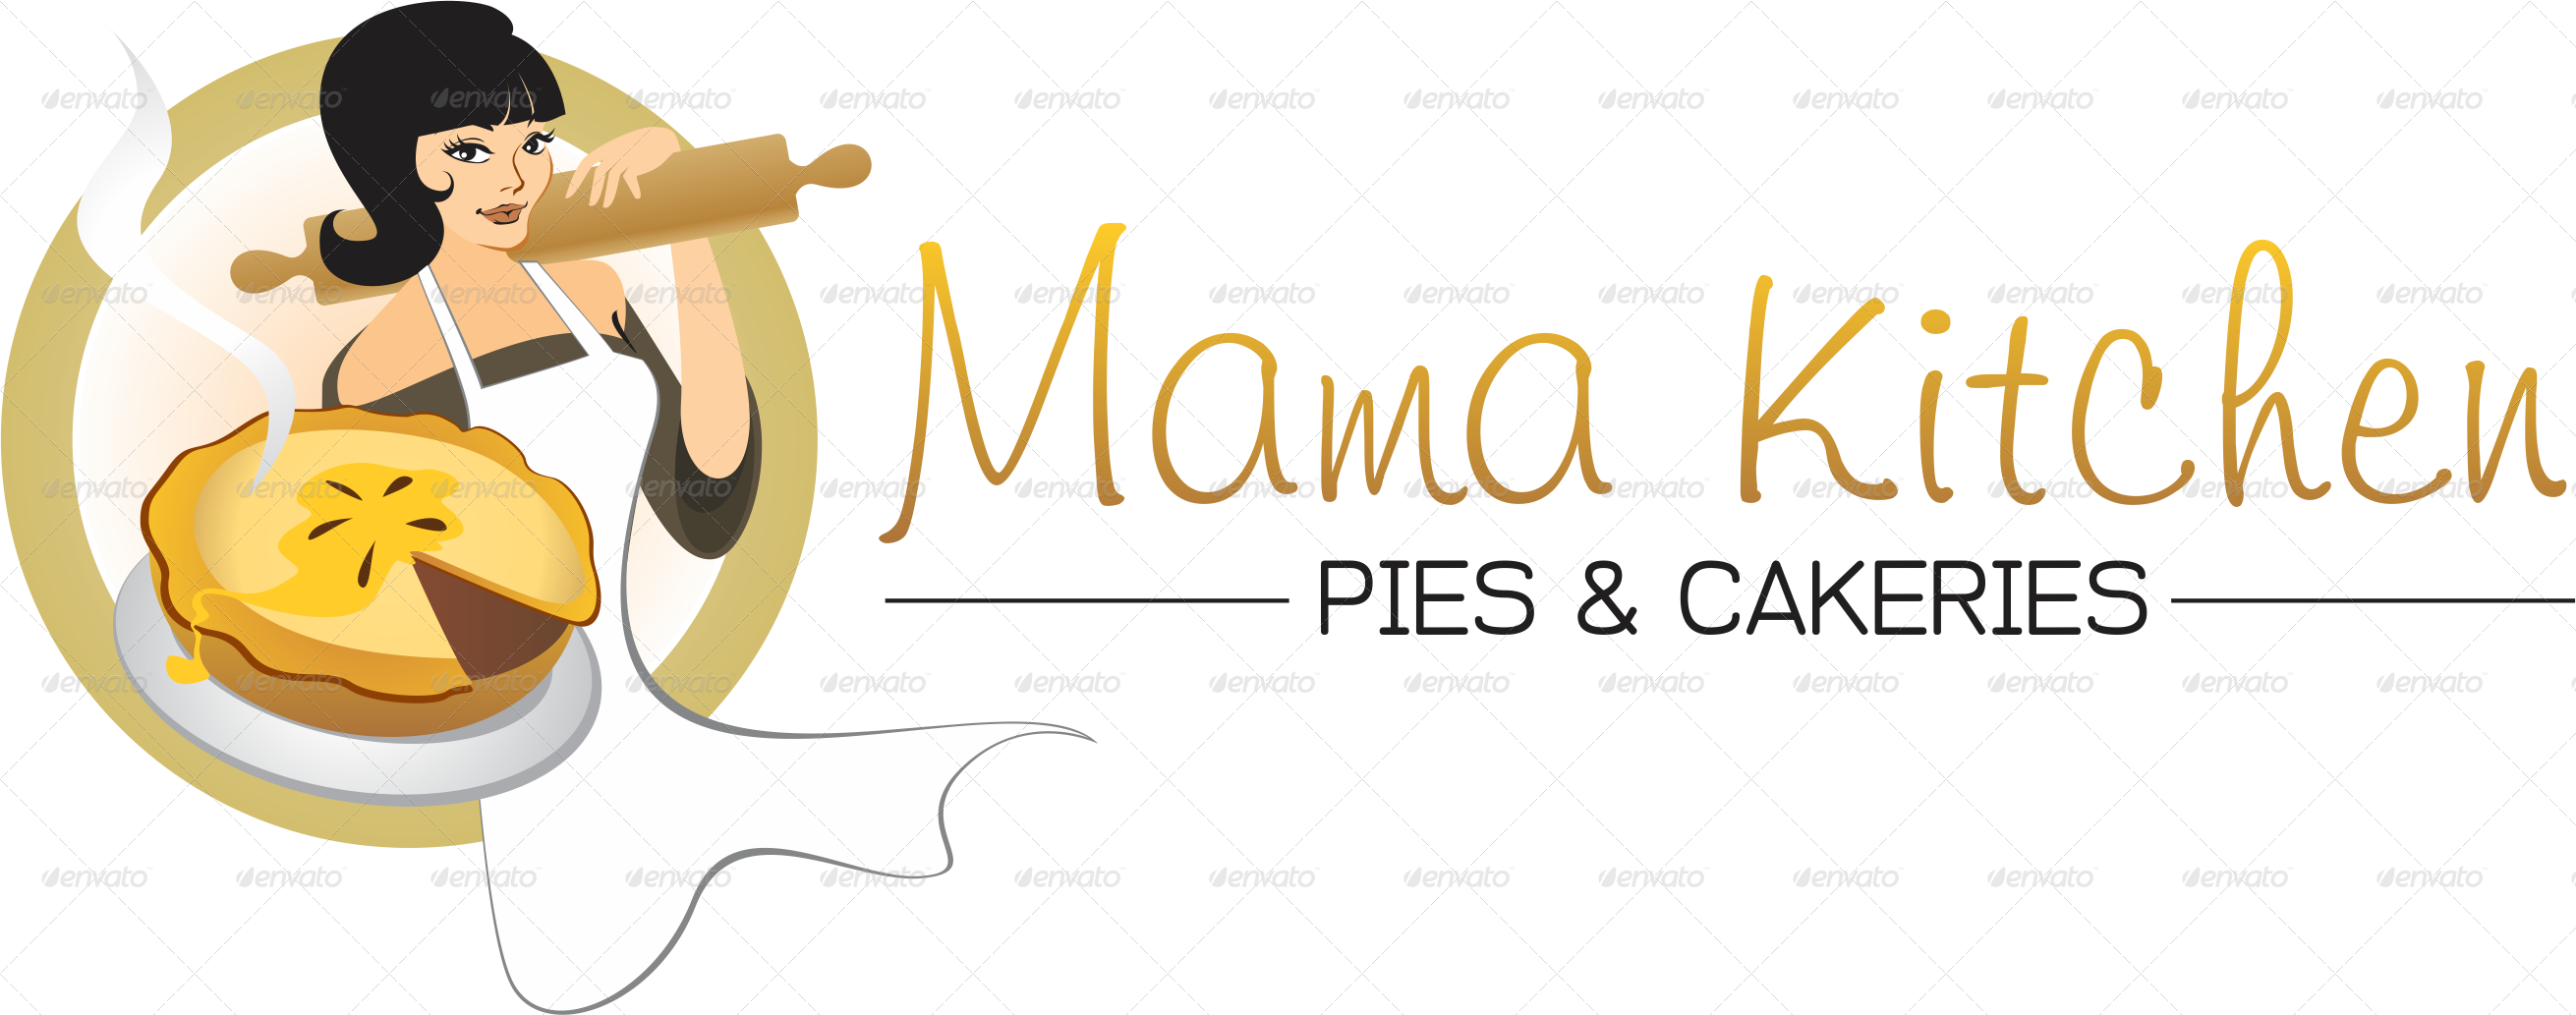 Logo Template Mama Kitchen Pies and Catering by mamarocknroll ...